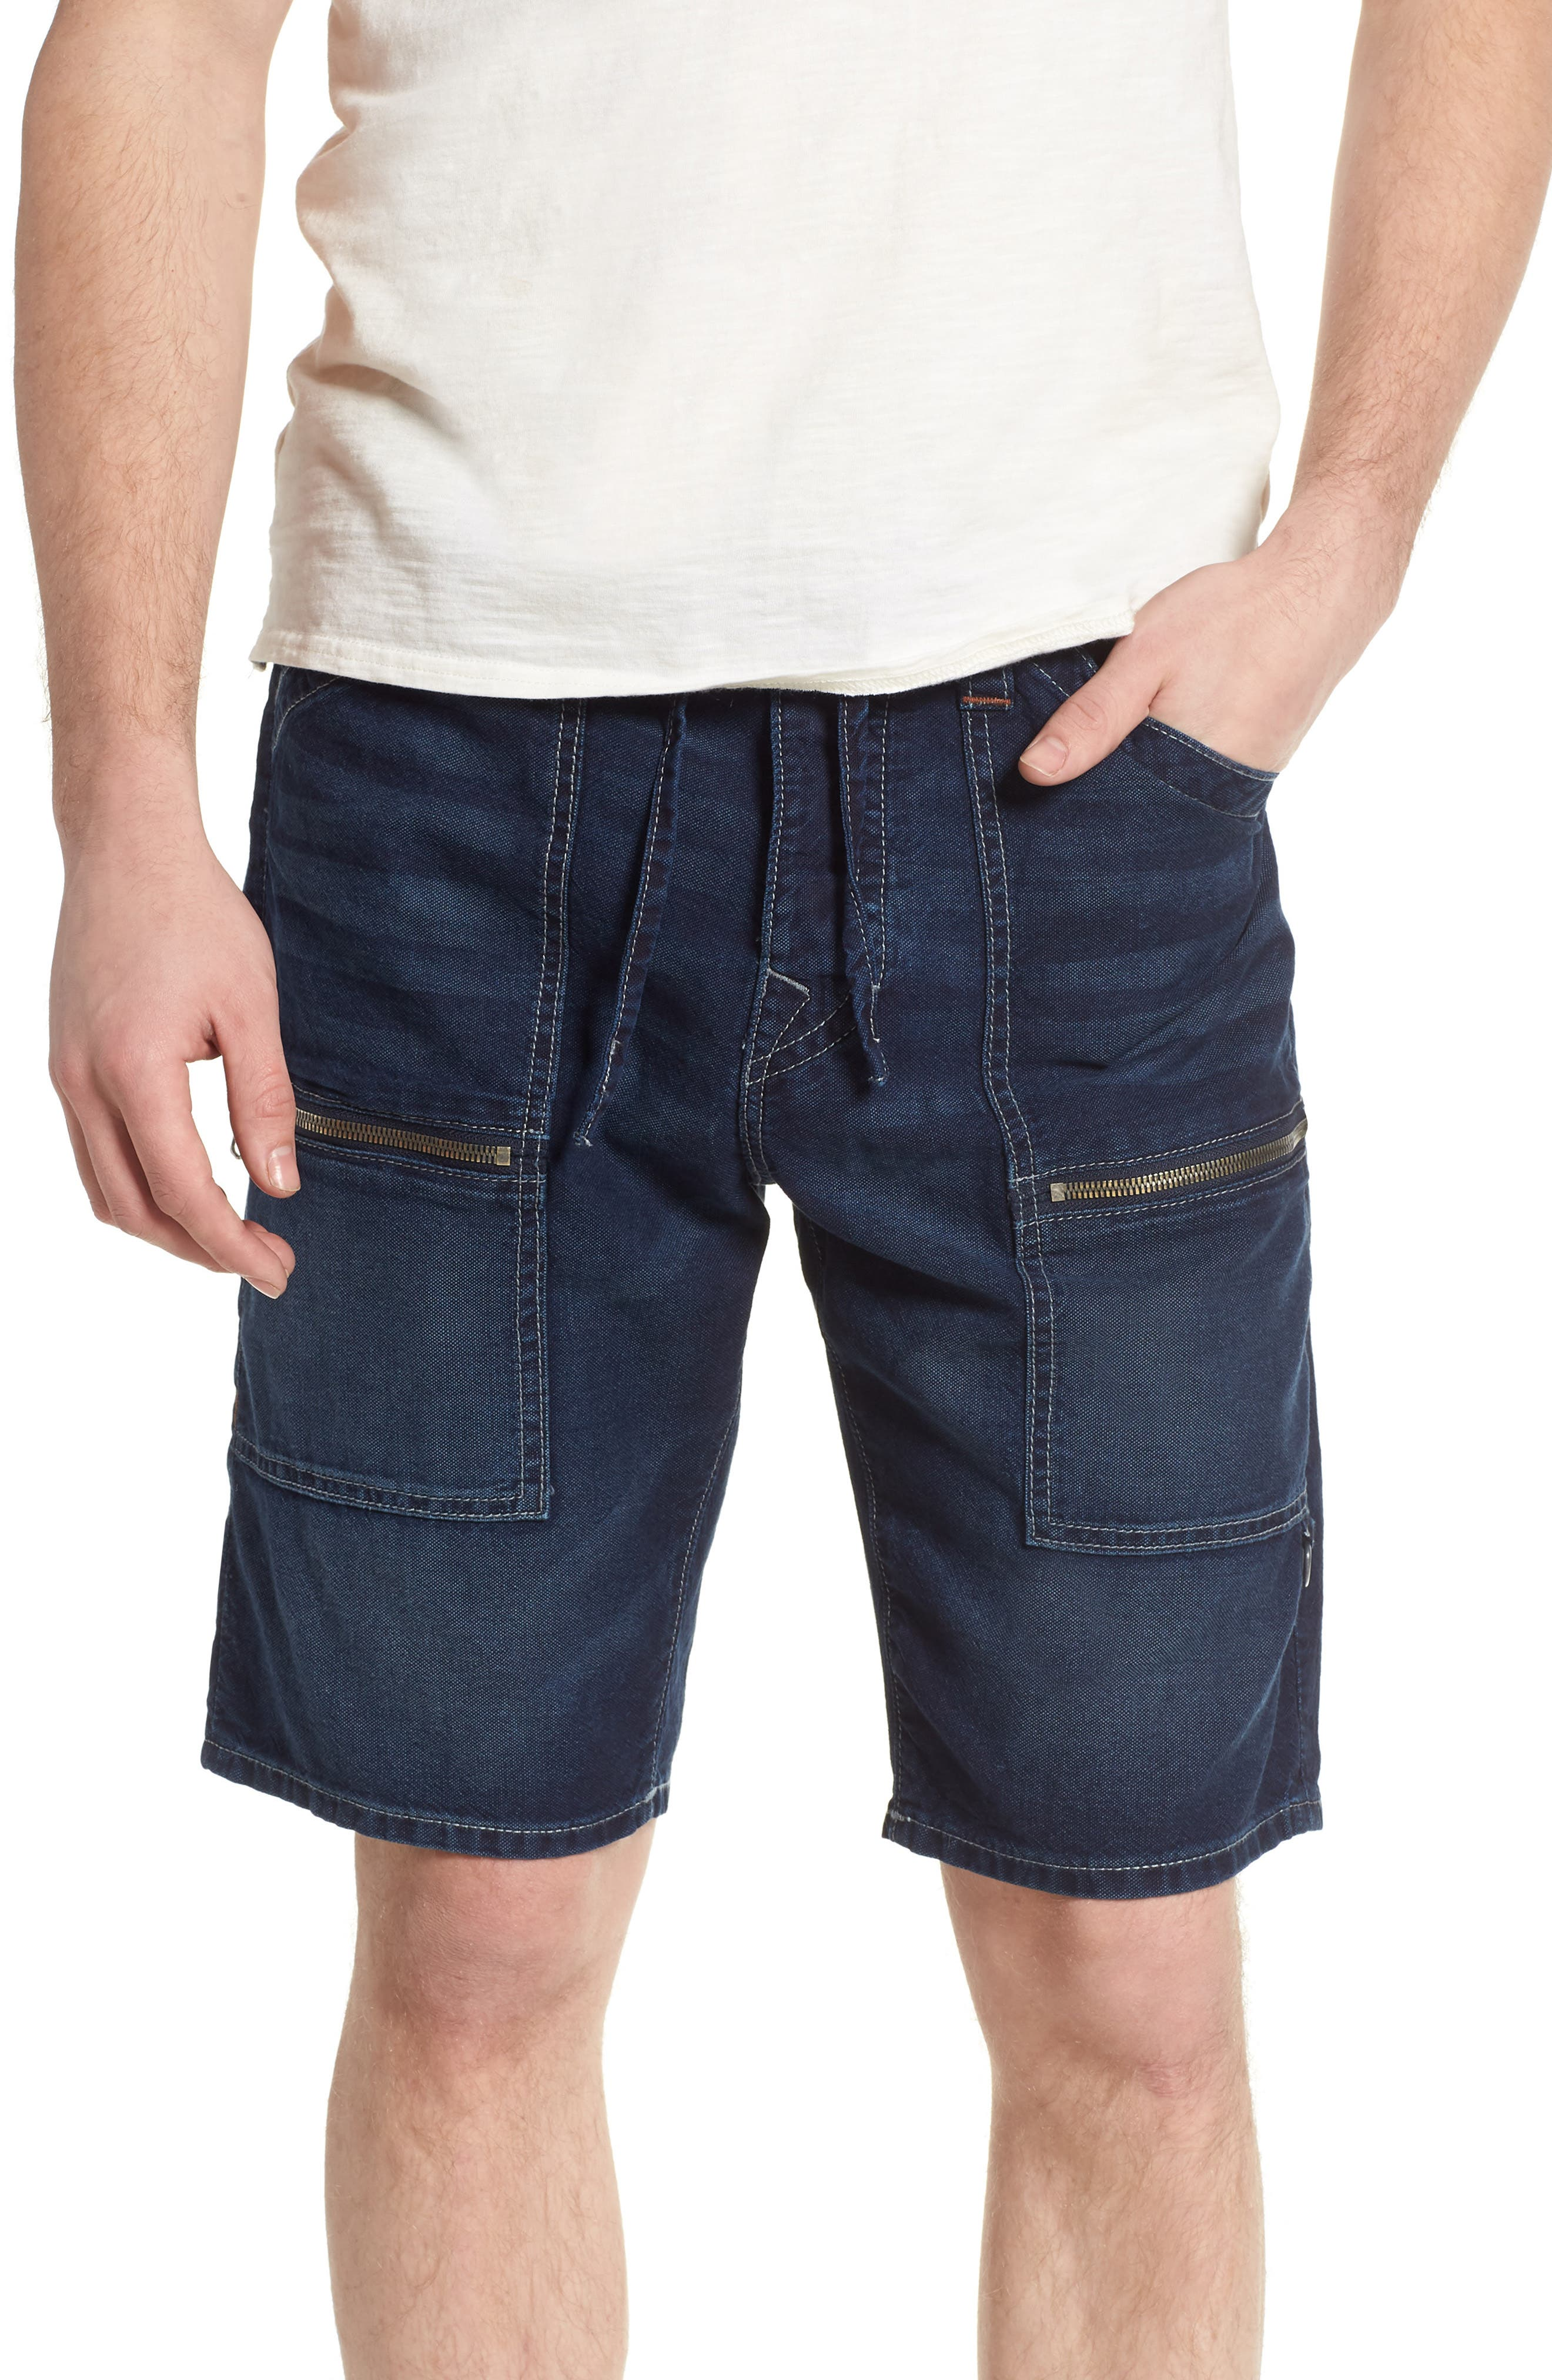 Trail Utility Shorts,                         Main,                         color, Eqdd Union Special